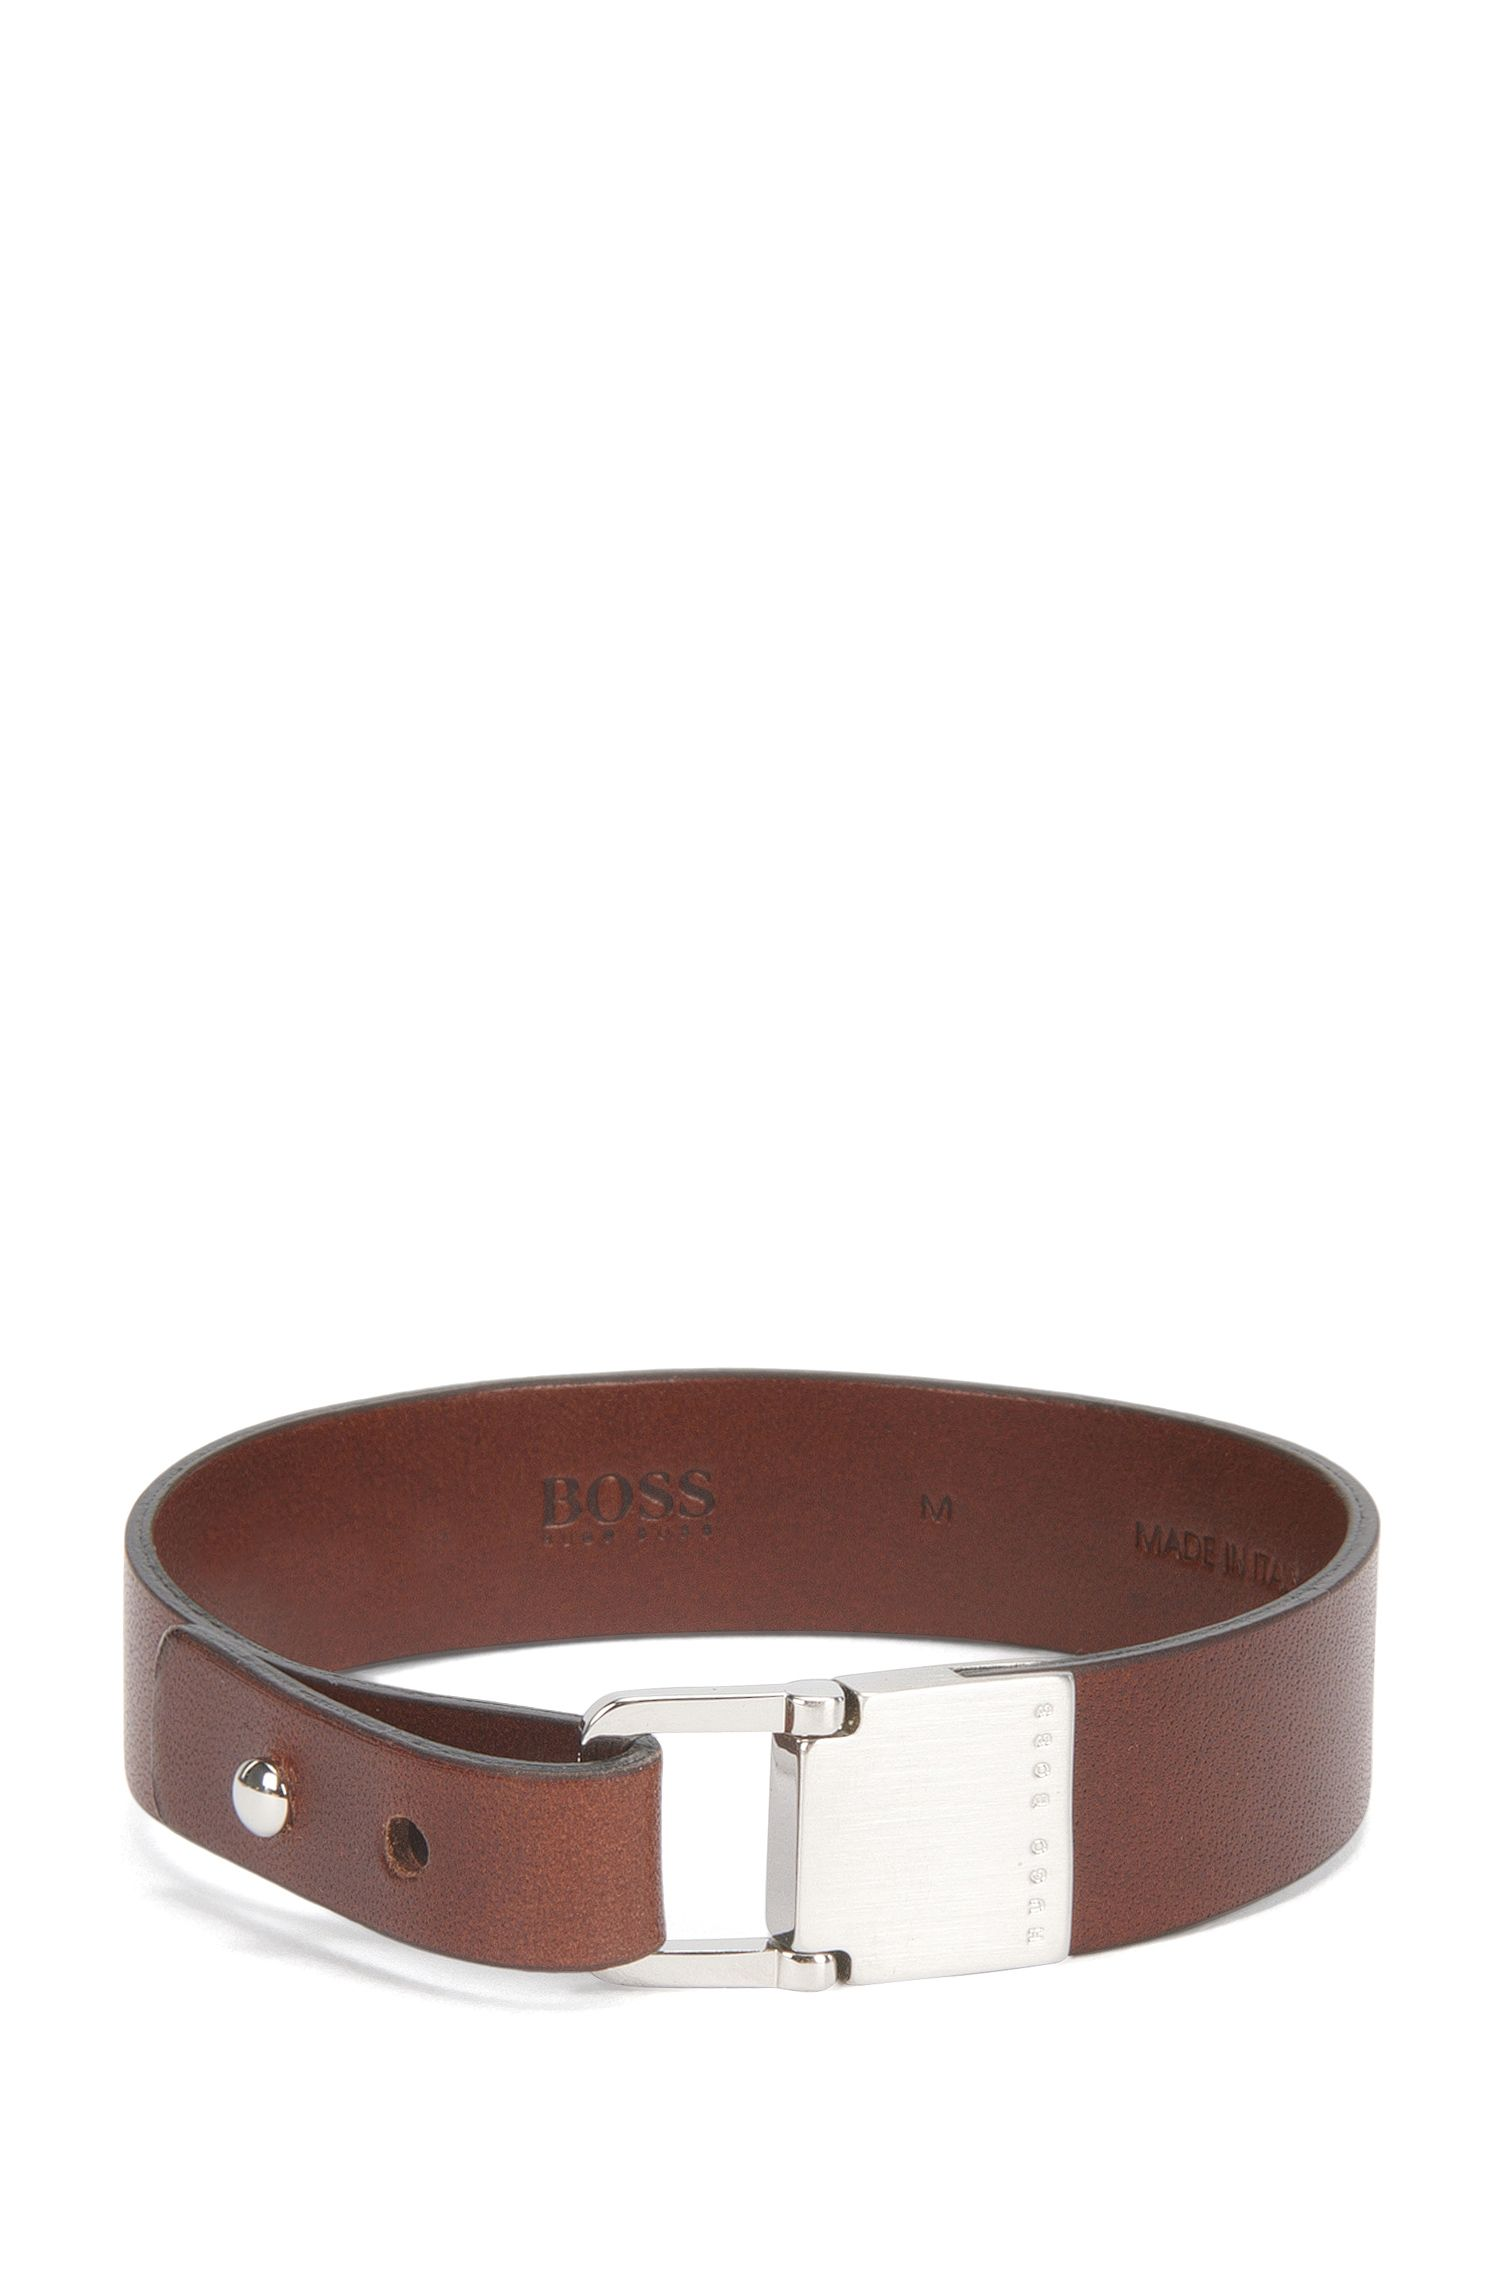 Leather bracelet with brushed metal closure